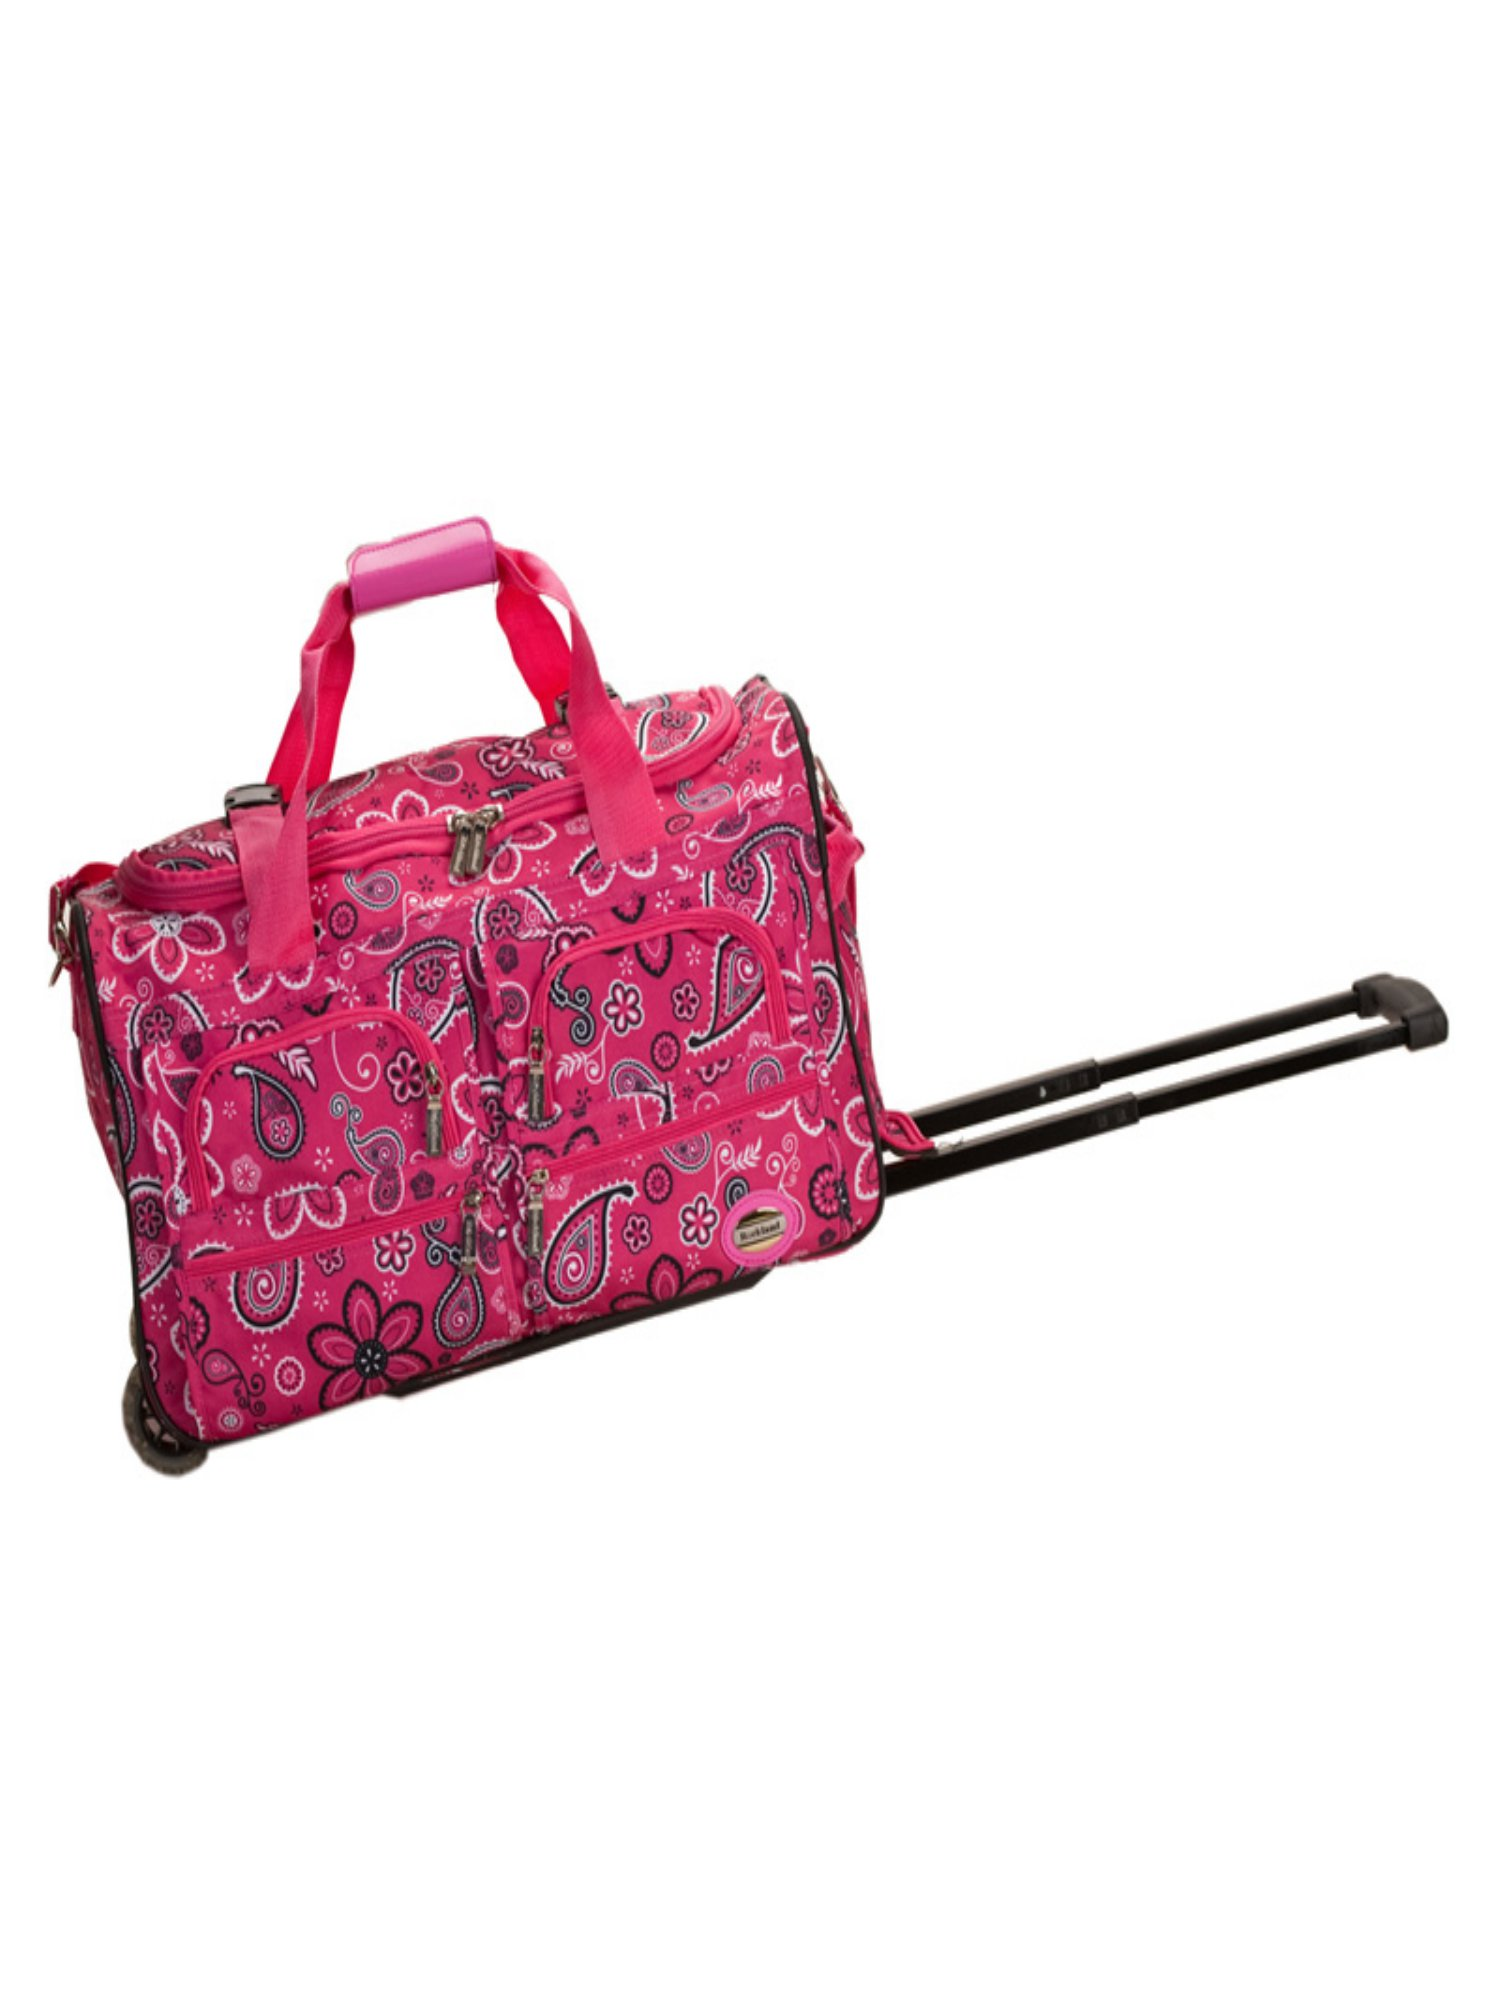 Rockland Luggage 22 in. Rolling Duffle Bag Pink Bandana by Fox Luggage Inc